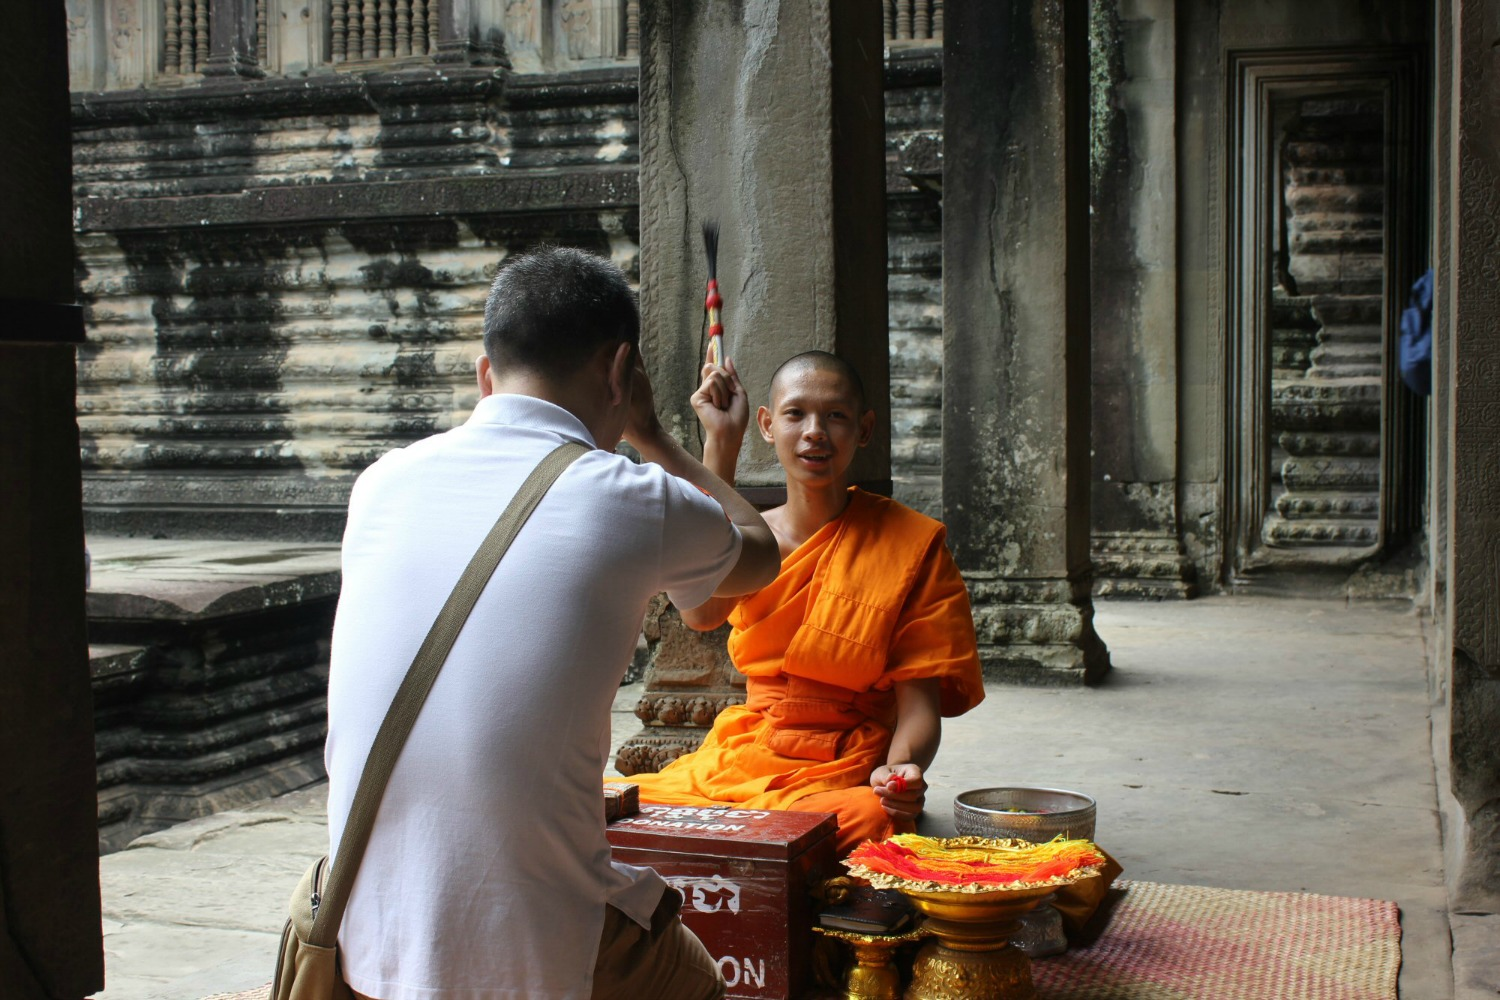 A monk blesses a man at Angkor Wat - my 12 reasons to visit Cambodia with kids